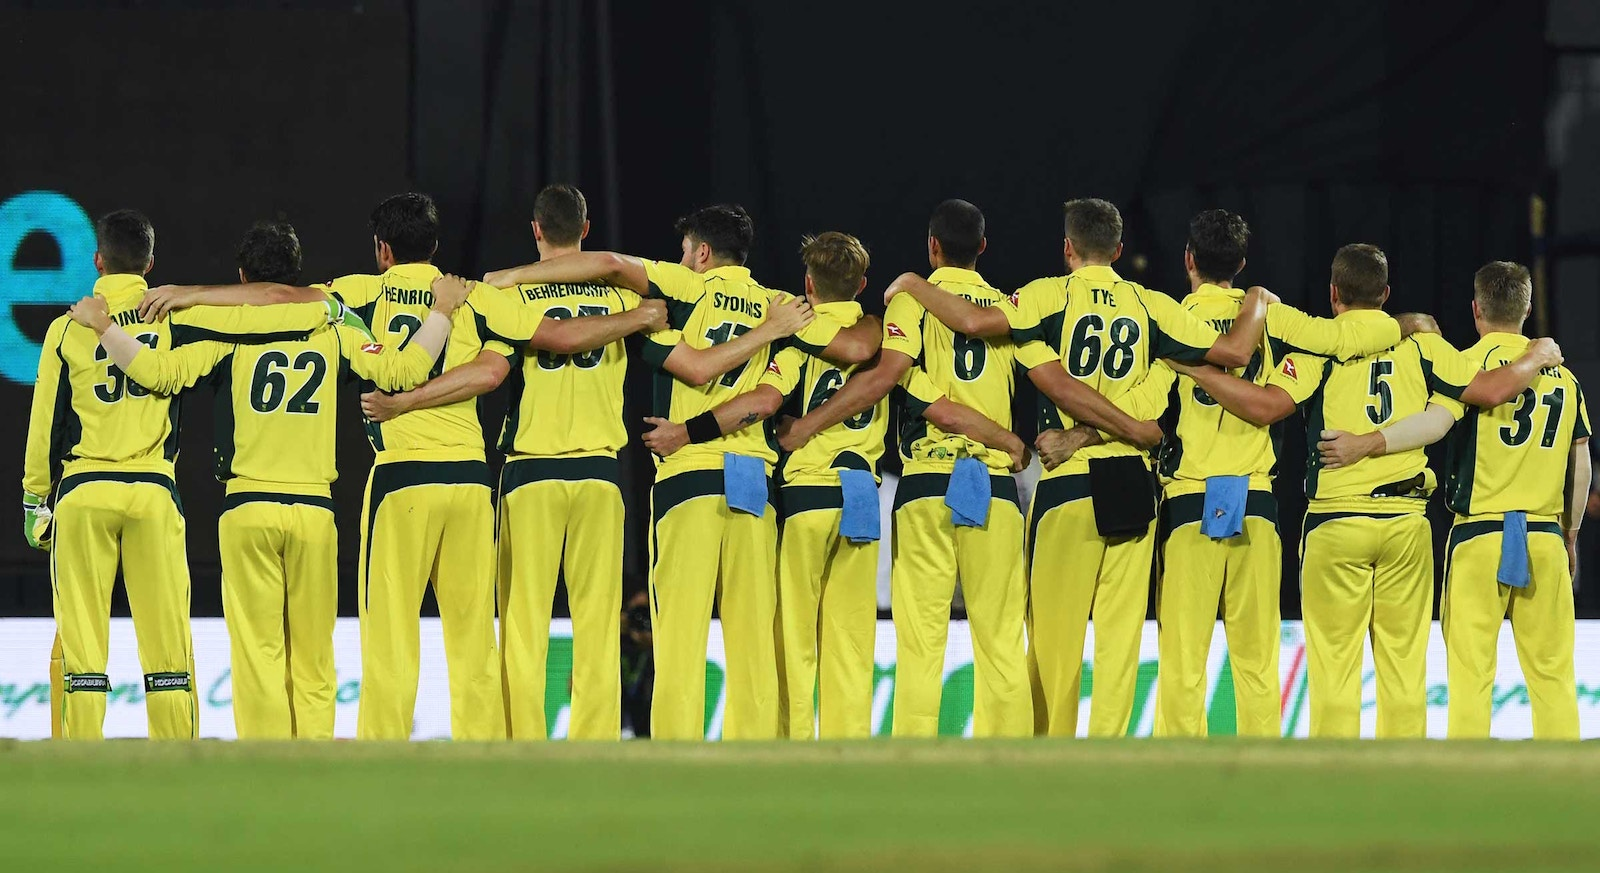 The Summer of Green & Gold - Australia prepare for the ODI & T20 Series